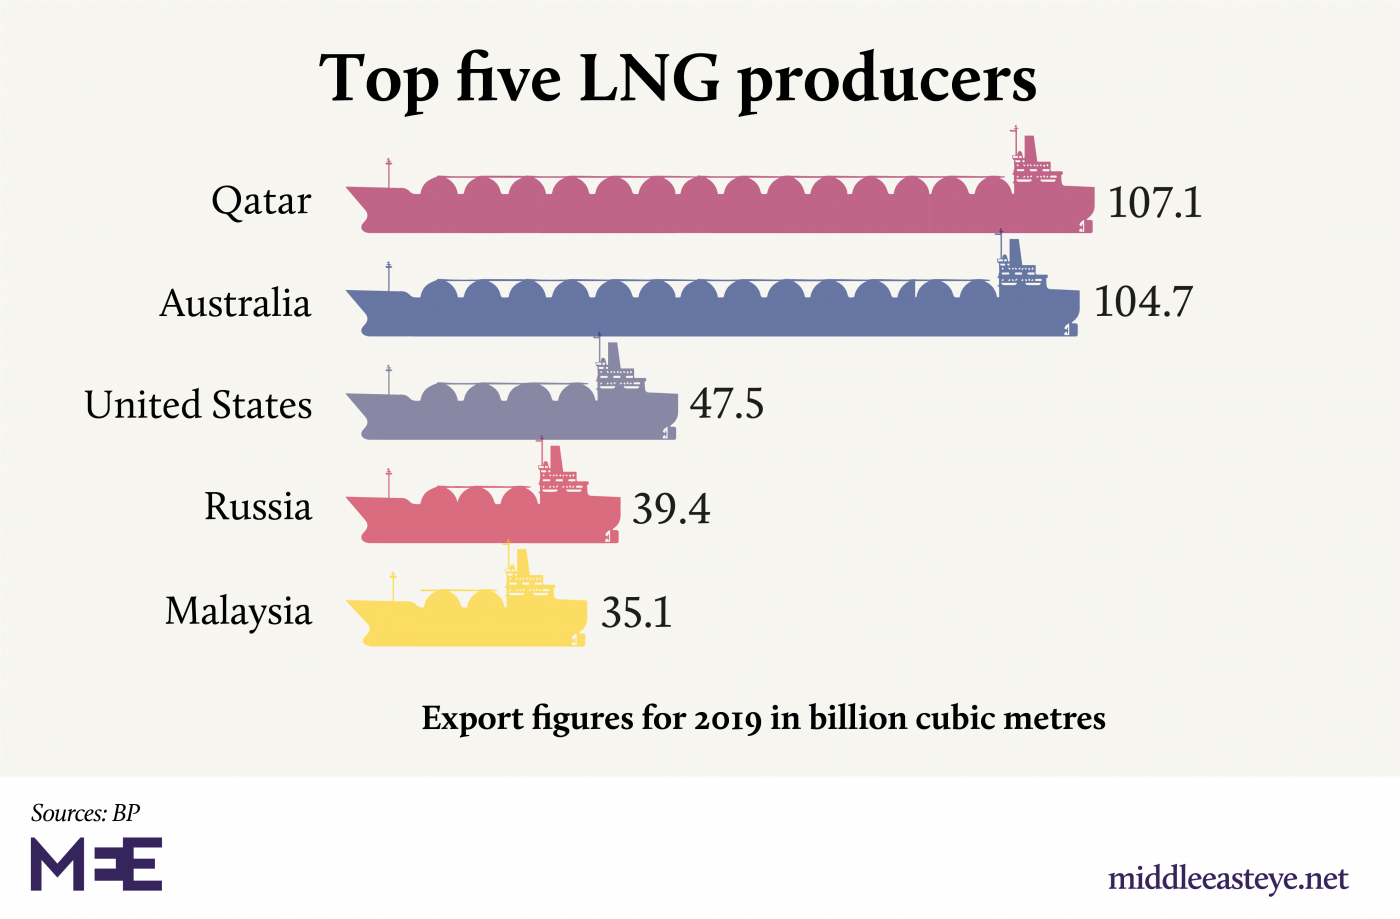 LNG producers